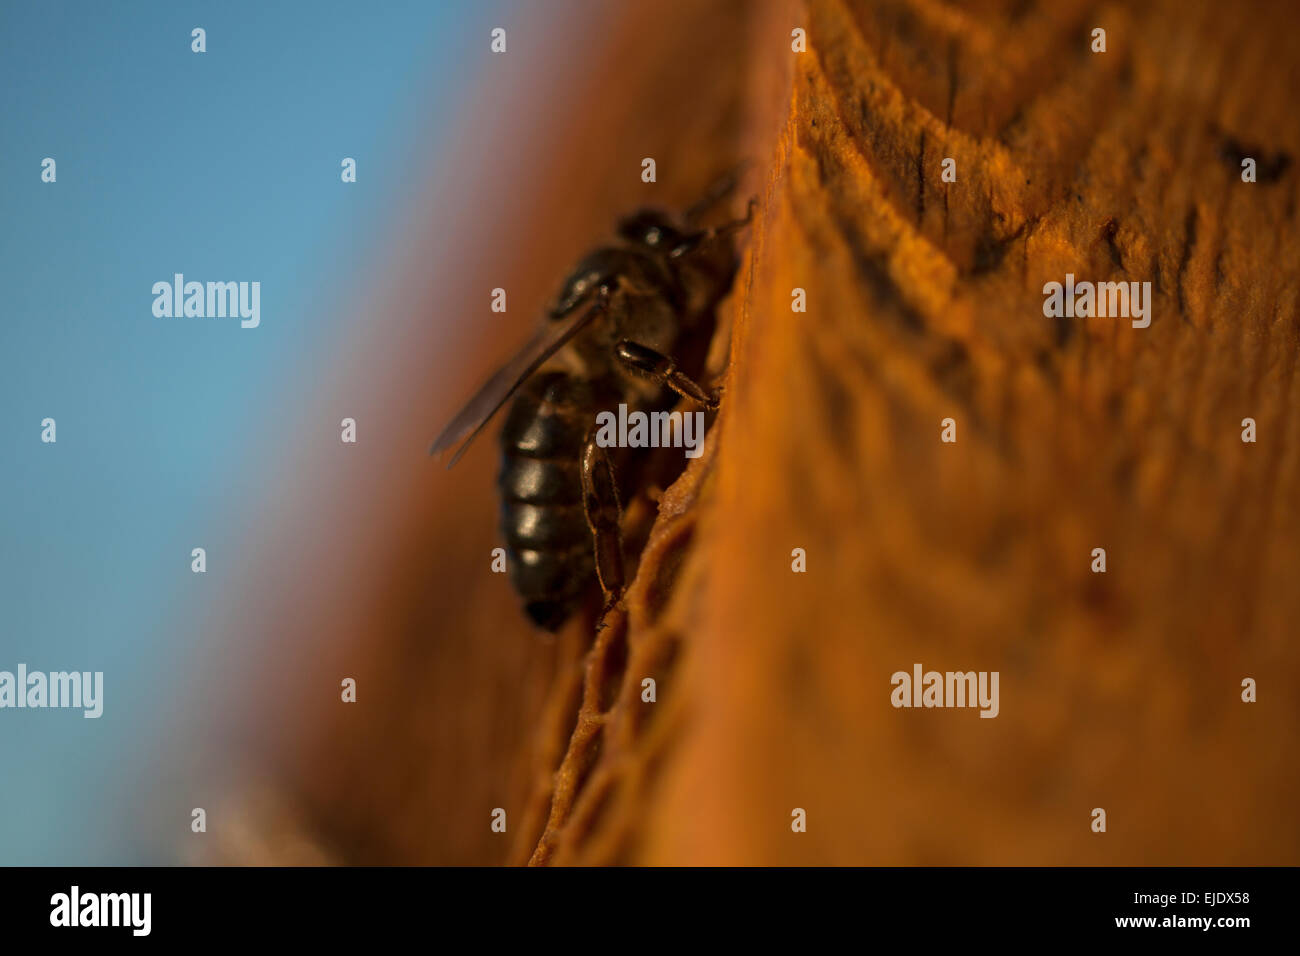 A queen bee walks in the center of a beehive of the apiary of Puremiel beekeepers in Arcos de la Frontera, Cadiz - Stock Image